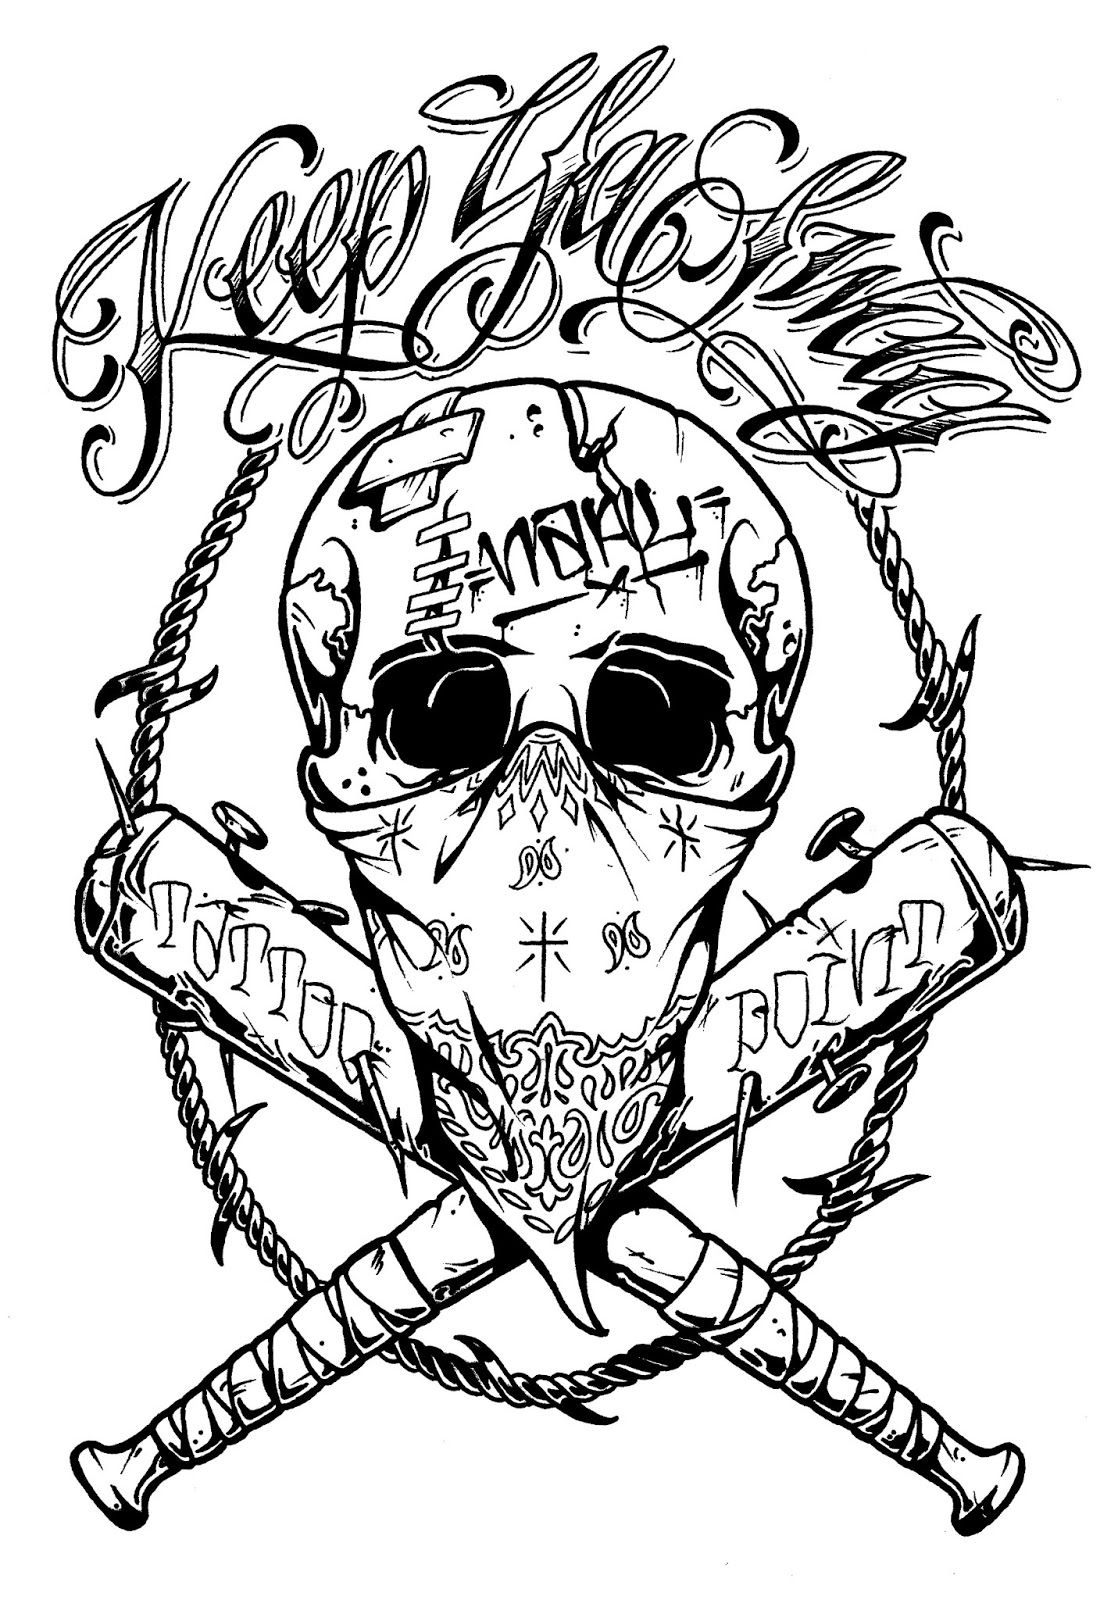 chicano art coloring pages chicano art drawings and coloring pages pages coloring art chicano